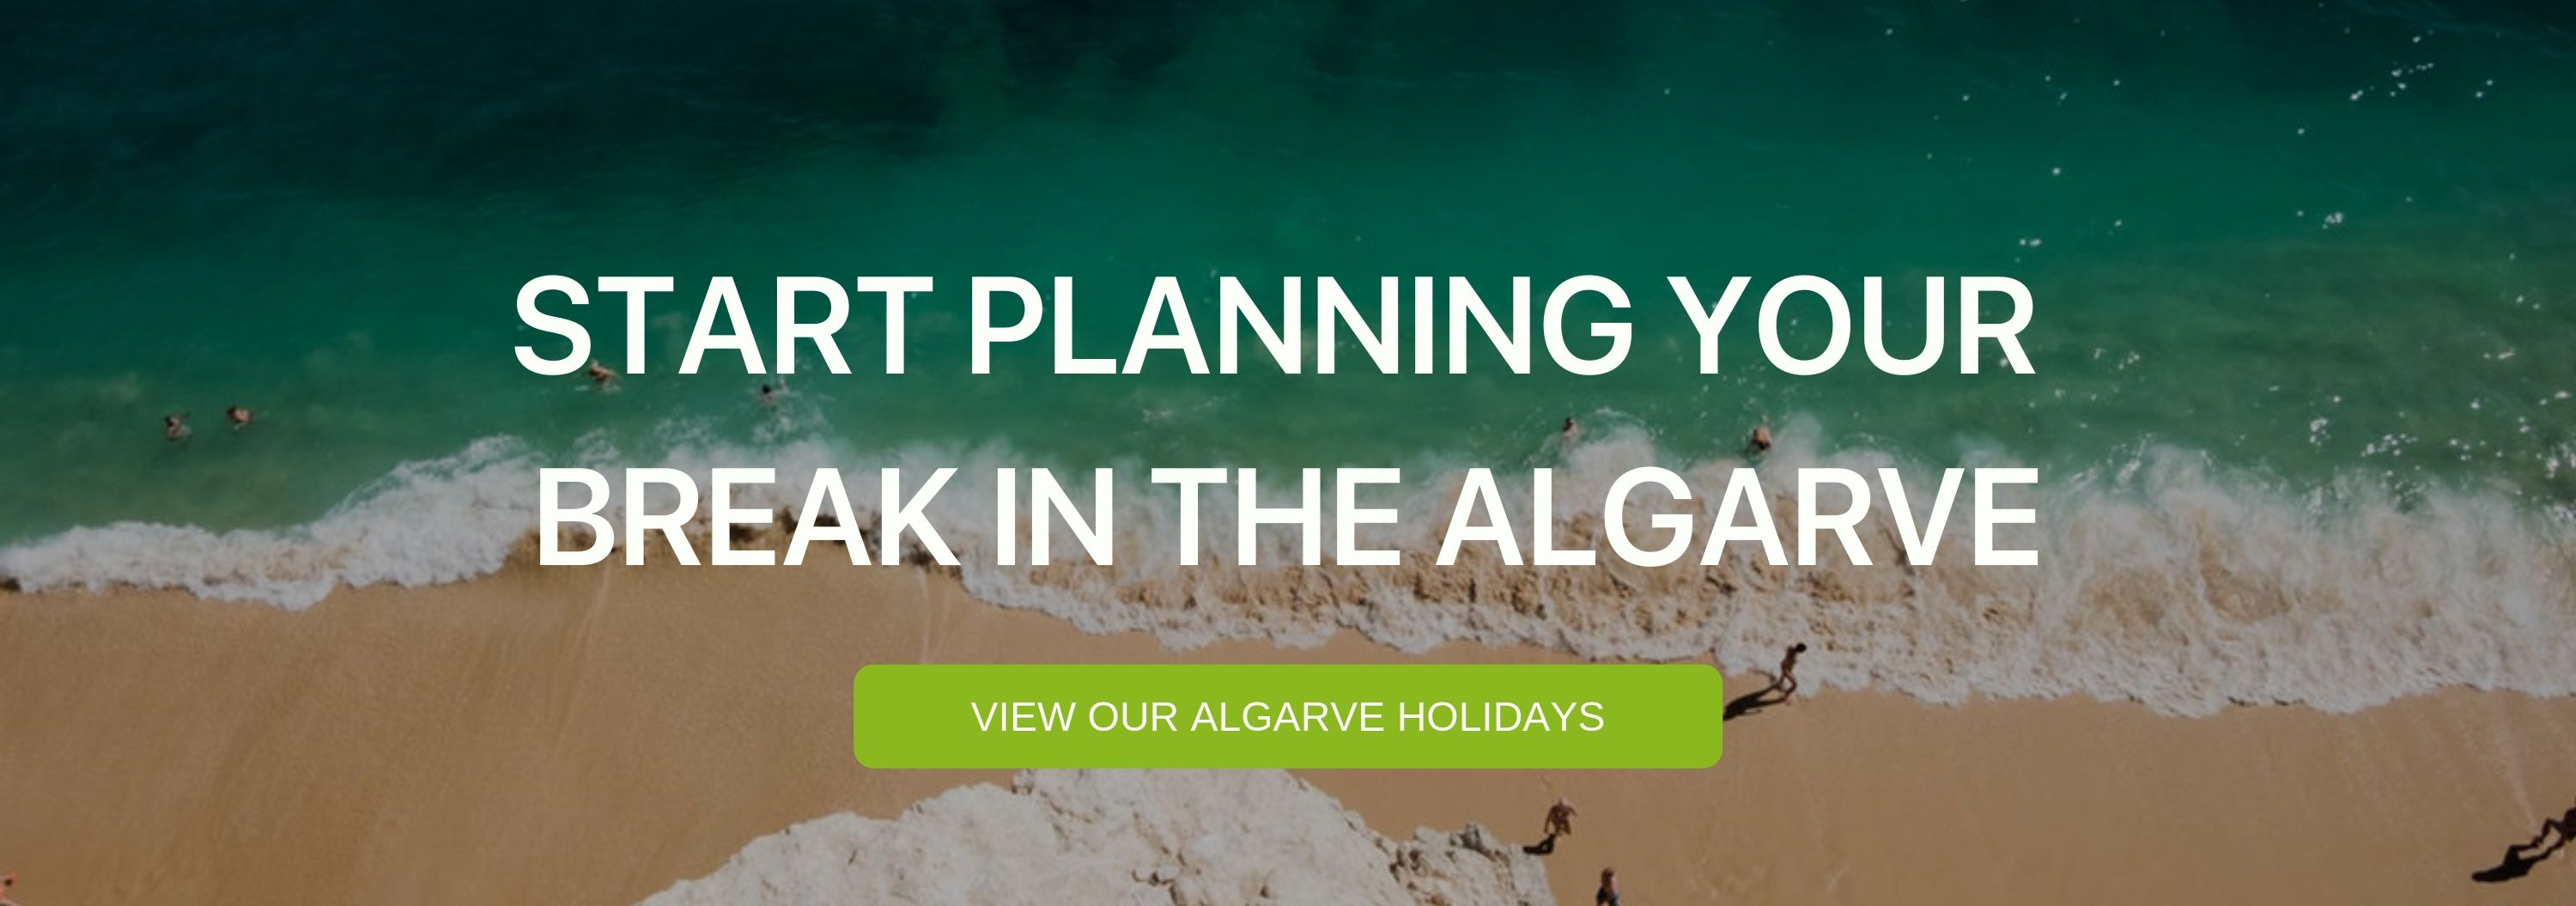 "A banner that reads ""Start planning your break in the Algarve"""